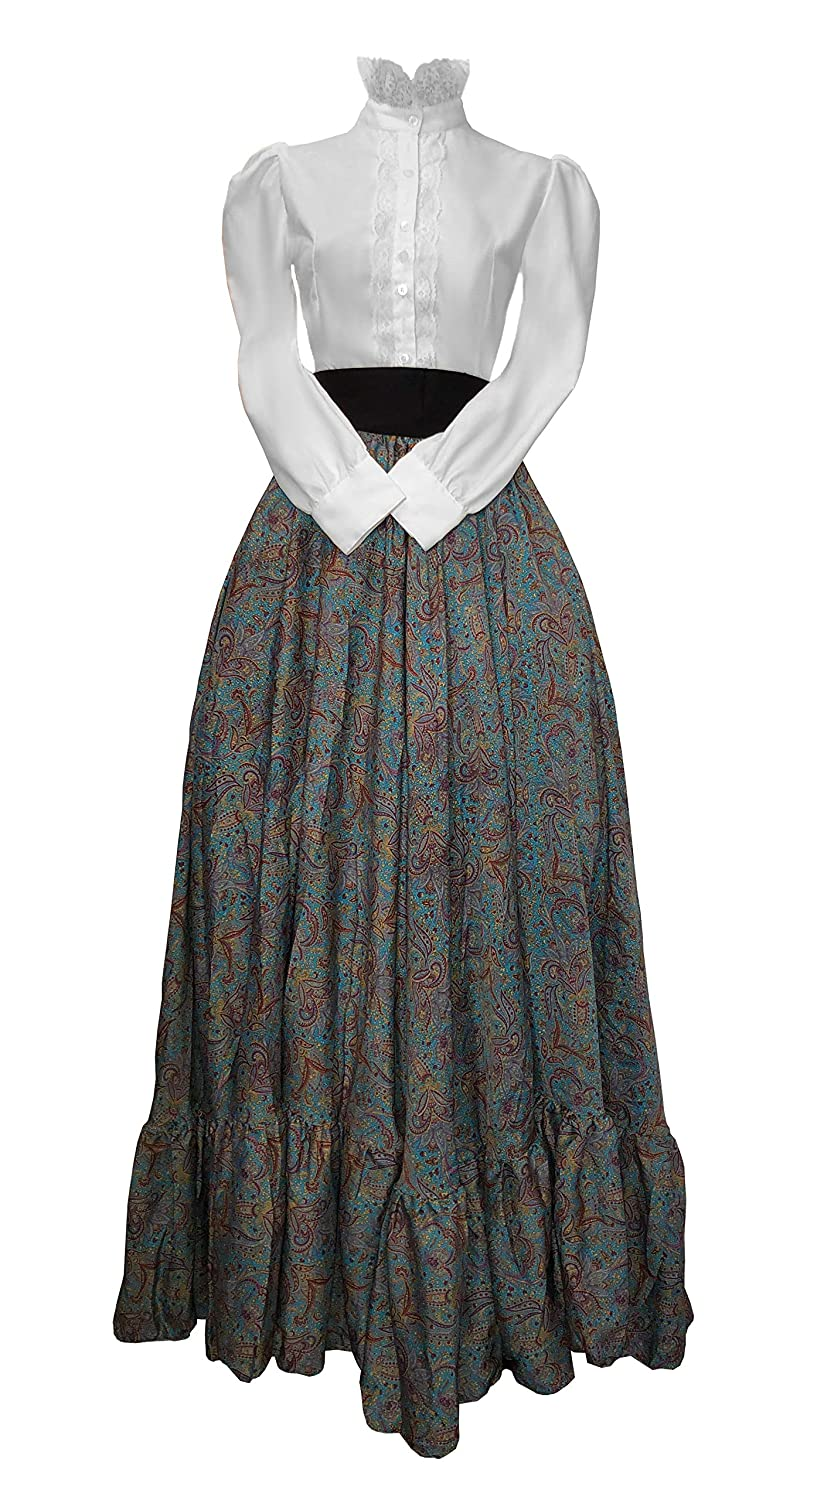 Old Fashioned Dresses | Old Dress Styles Civil War Era Victorian 3 pc Costume $69.99 AT vintagedancer.com